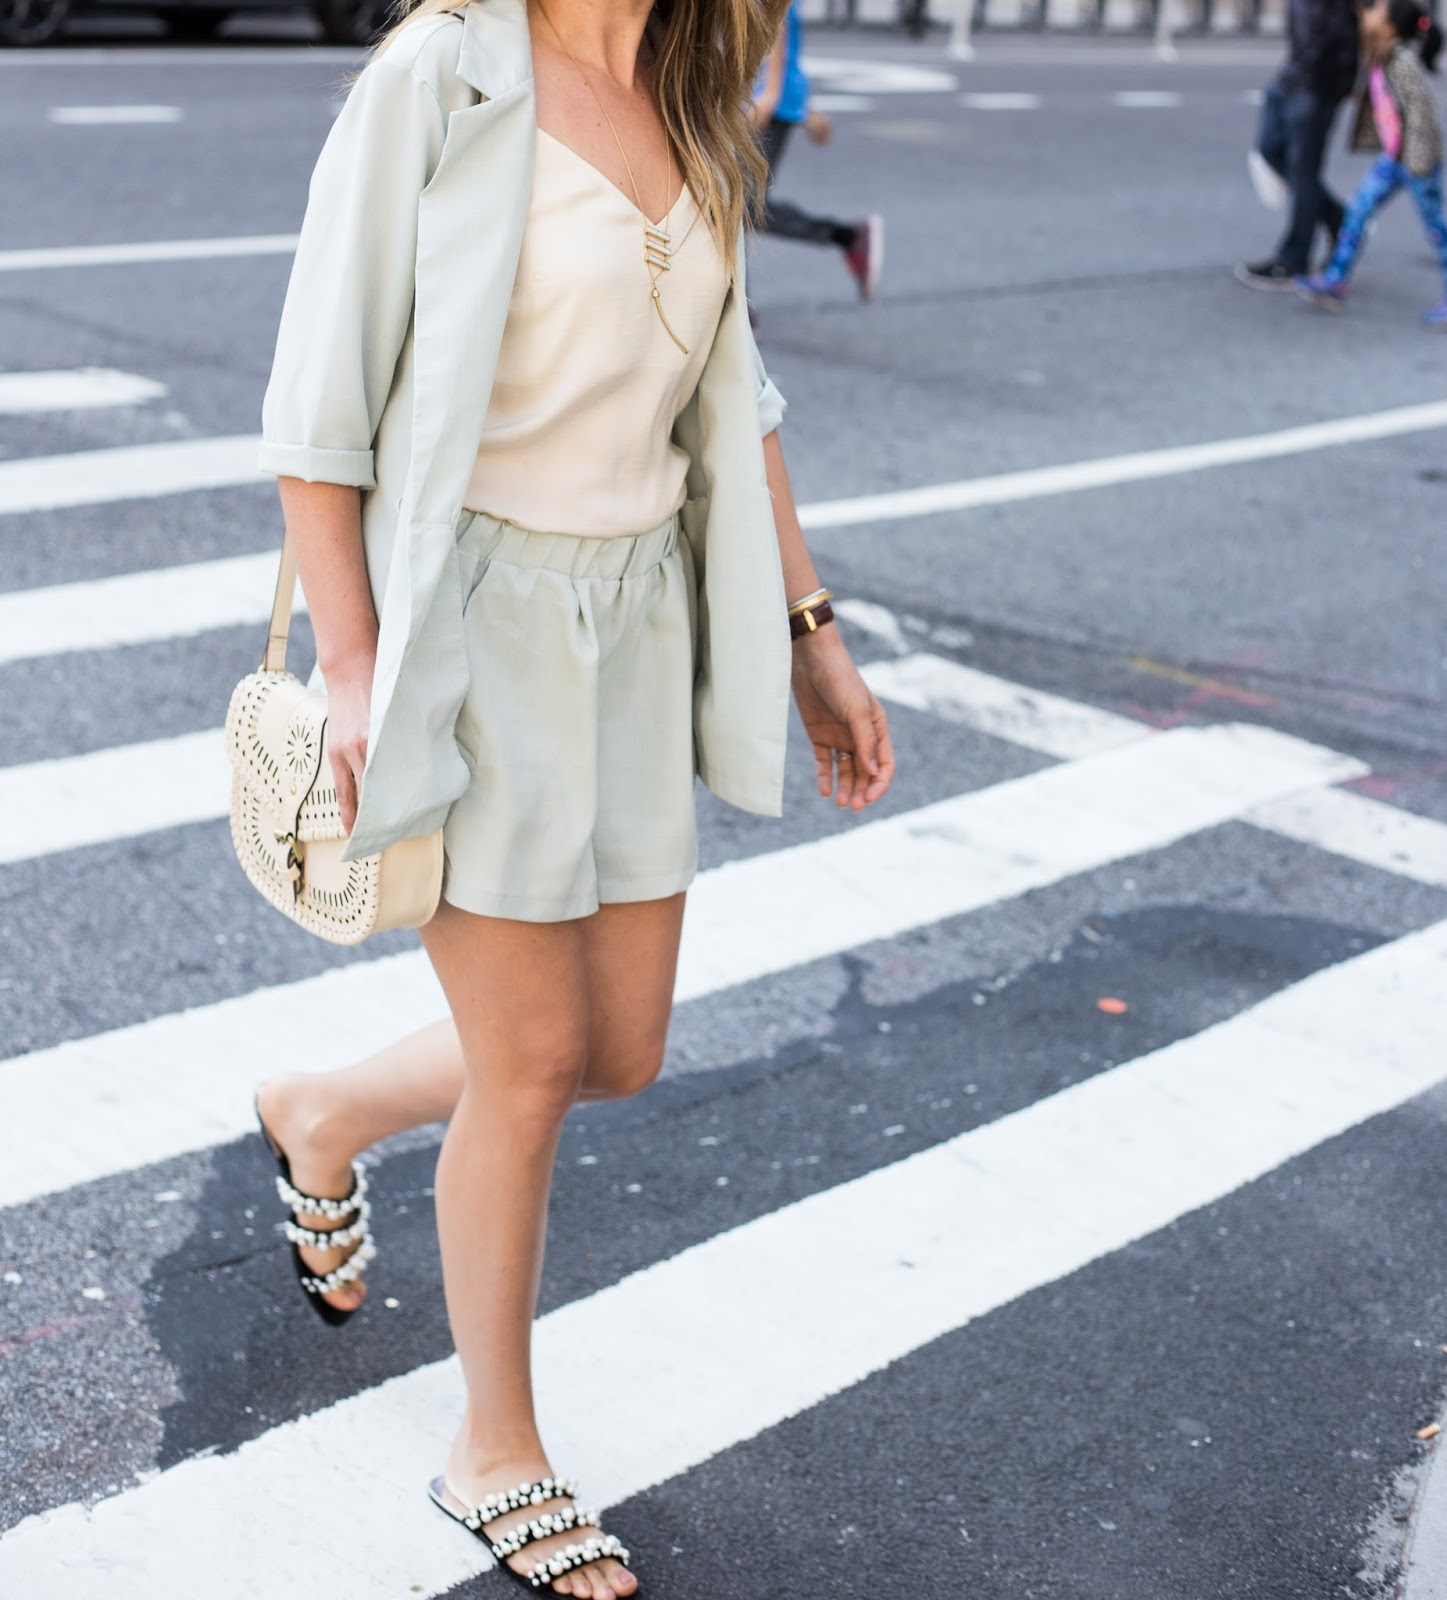 New York Fashion Week Recap: What To Expect by Colorado fashion blogger Eat Pray Wear Love